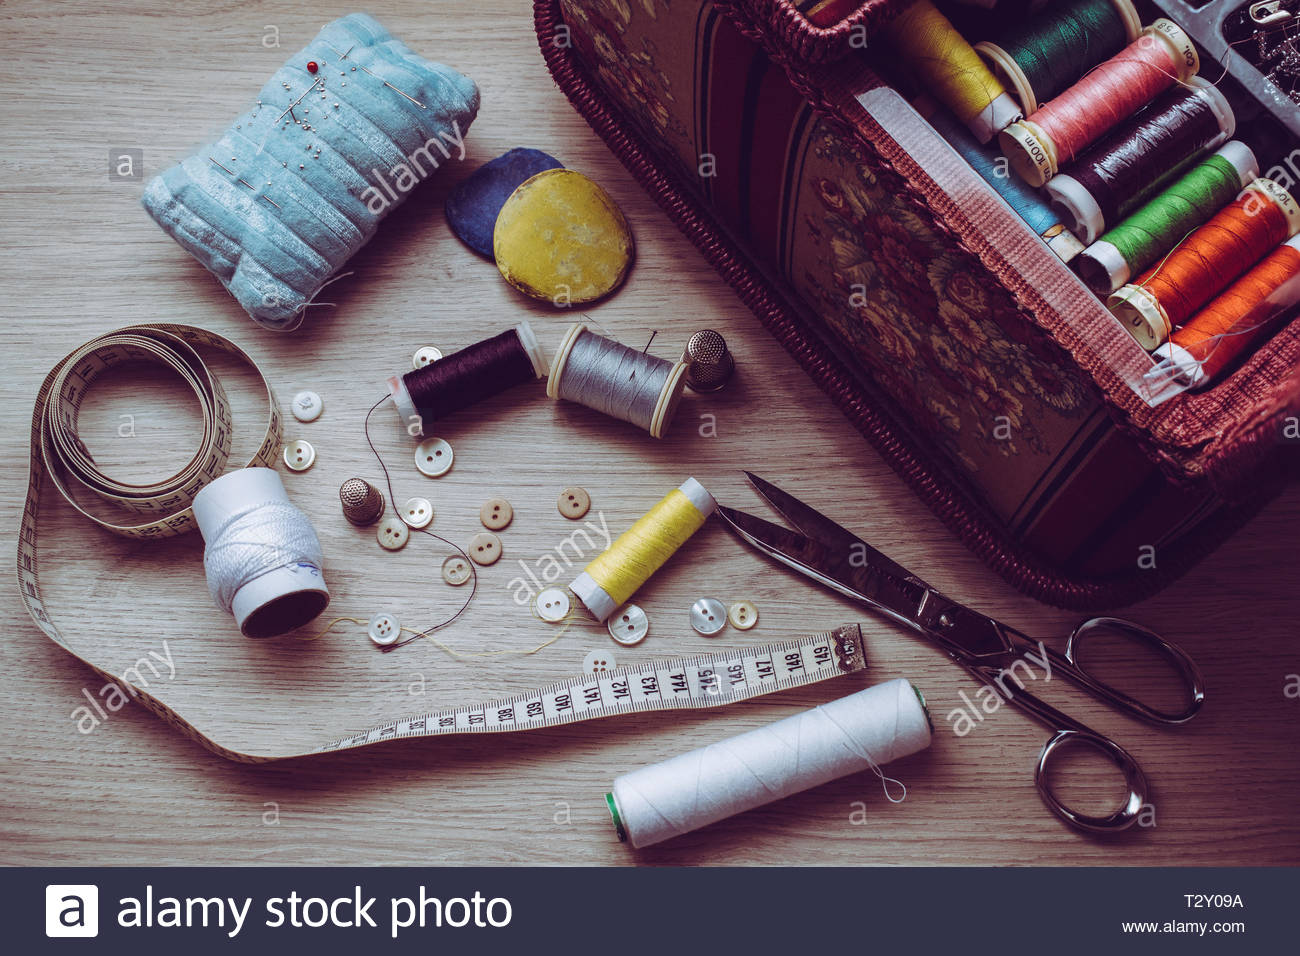 some of the tools needed to sew on a table - Stock Image